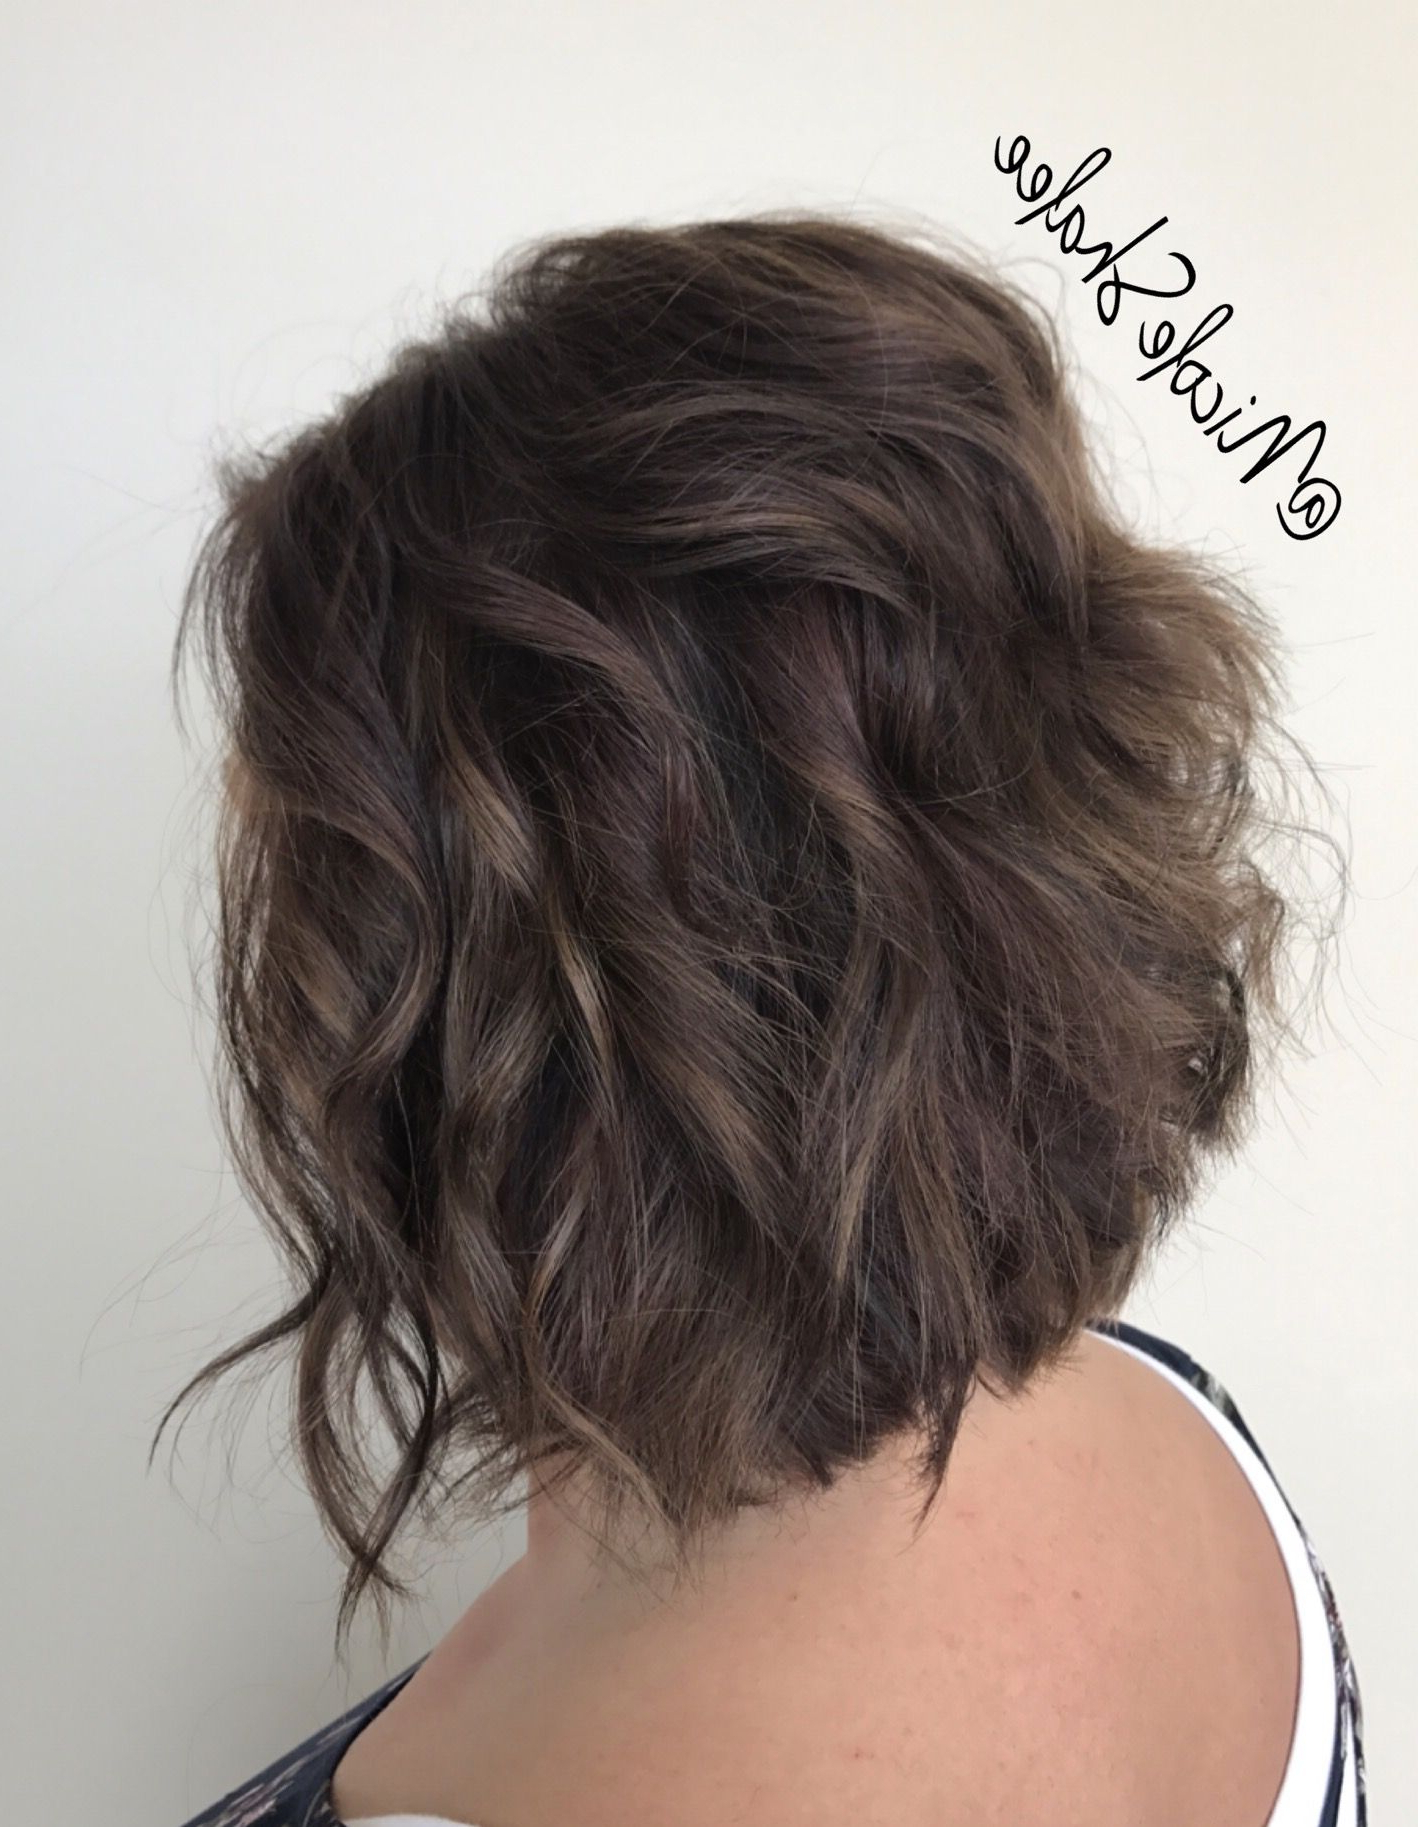 A Little Caramel A Little Cherry.. And A Whole Lot Of Regarding Stacked Black Bobhairstyles With Cherry Balayage (Gallery 9 of 20)